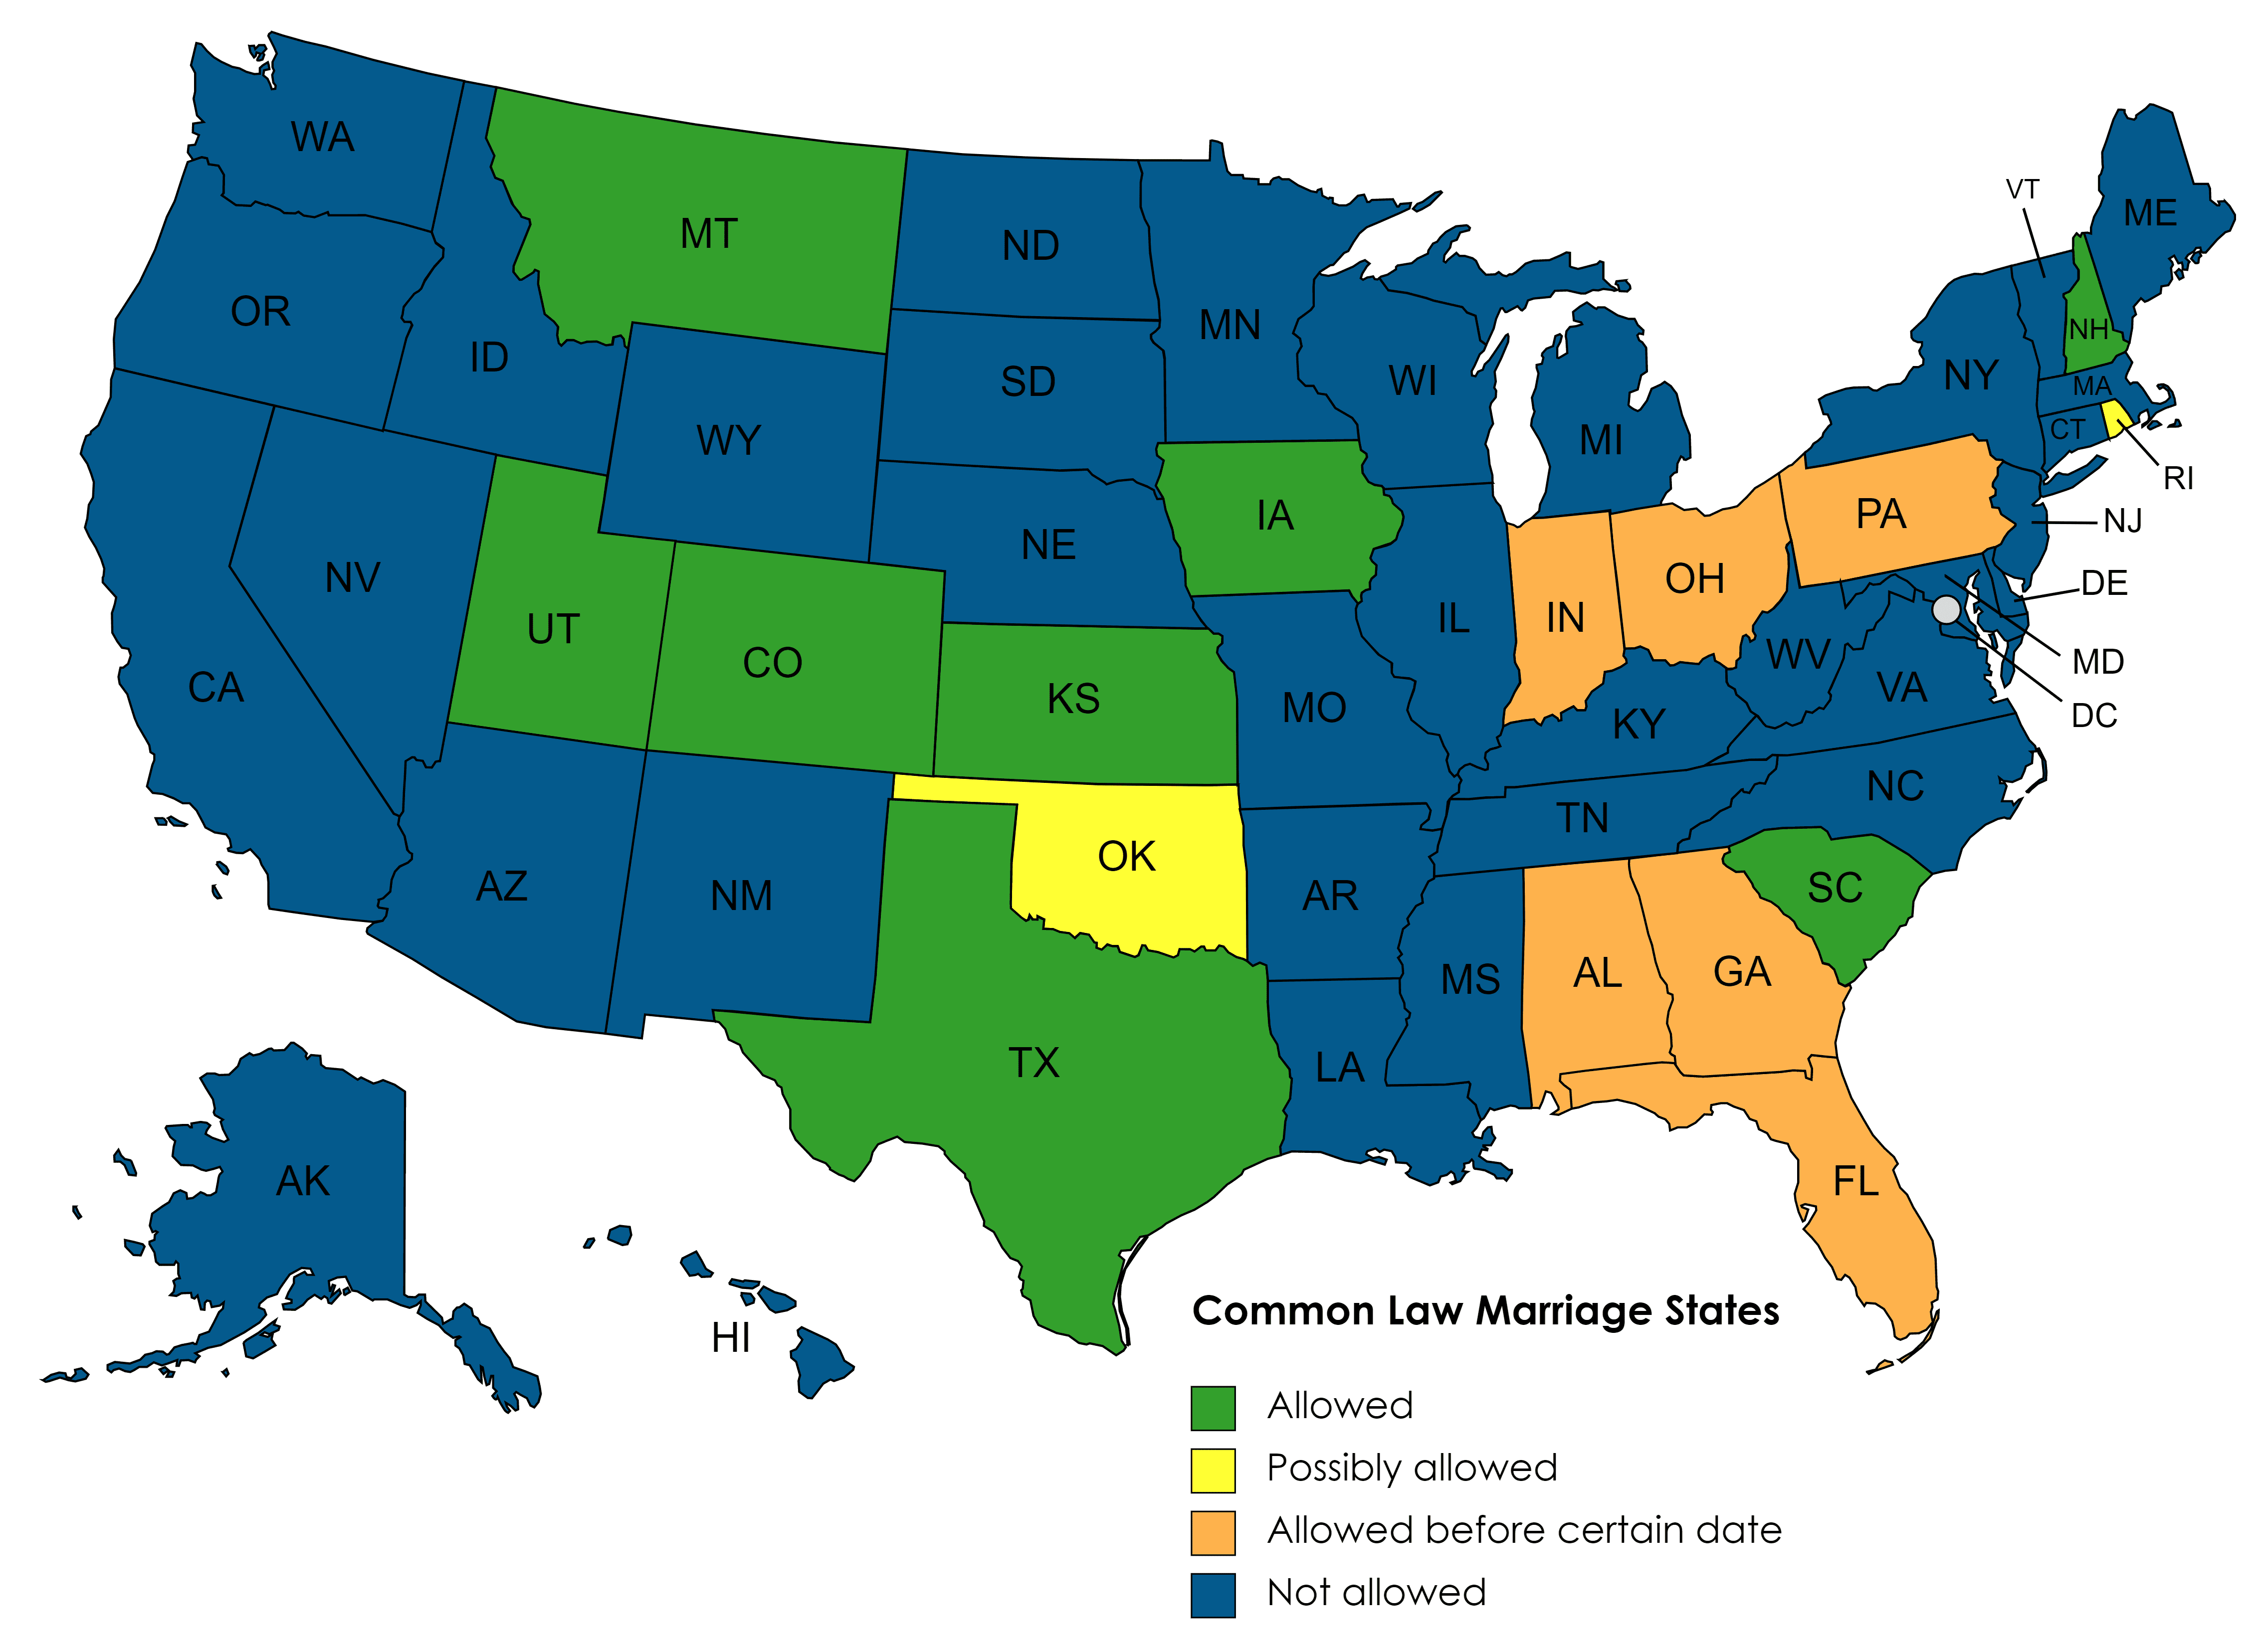 Map of the United States, with common-law marriage states identified